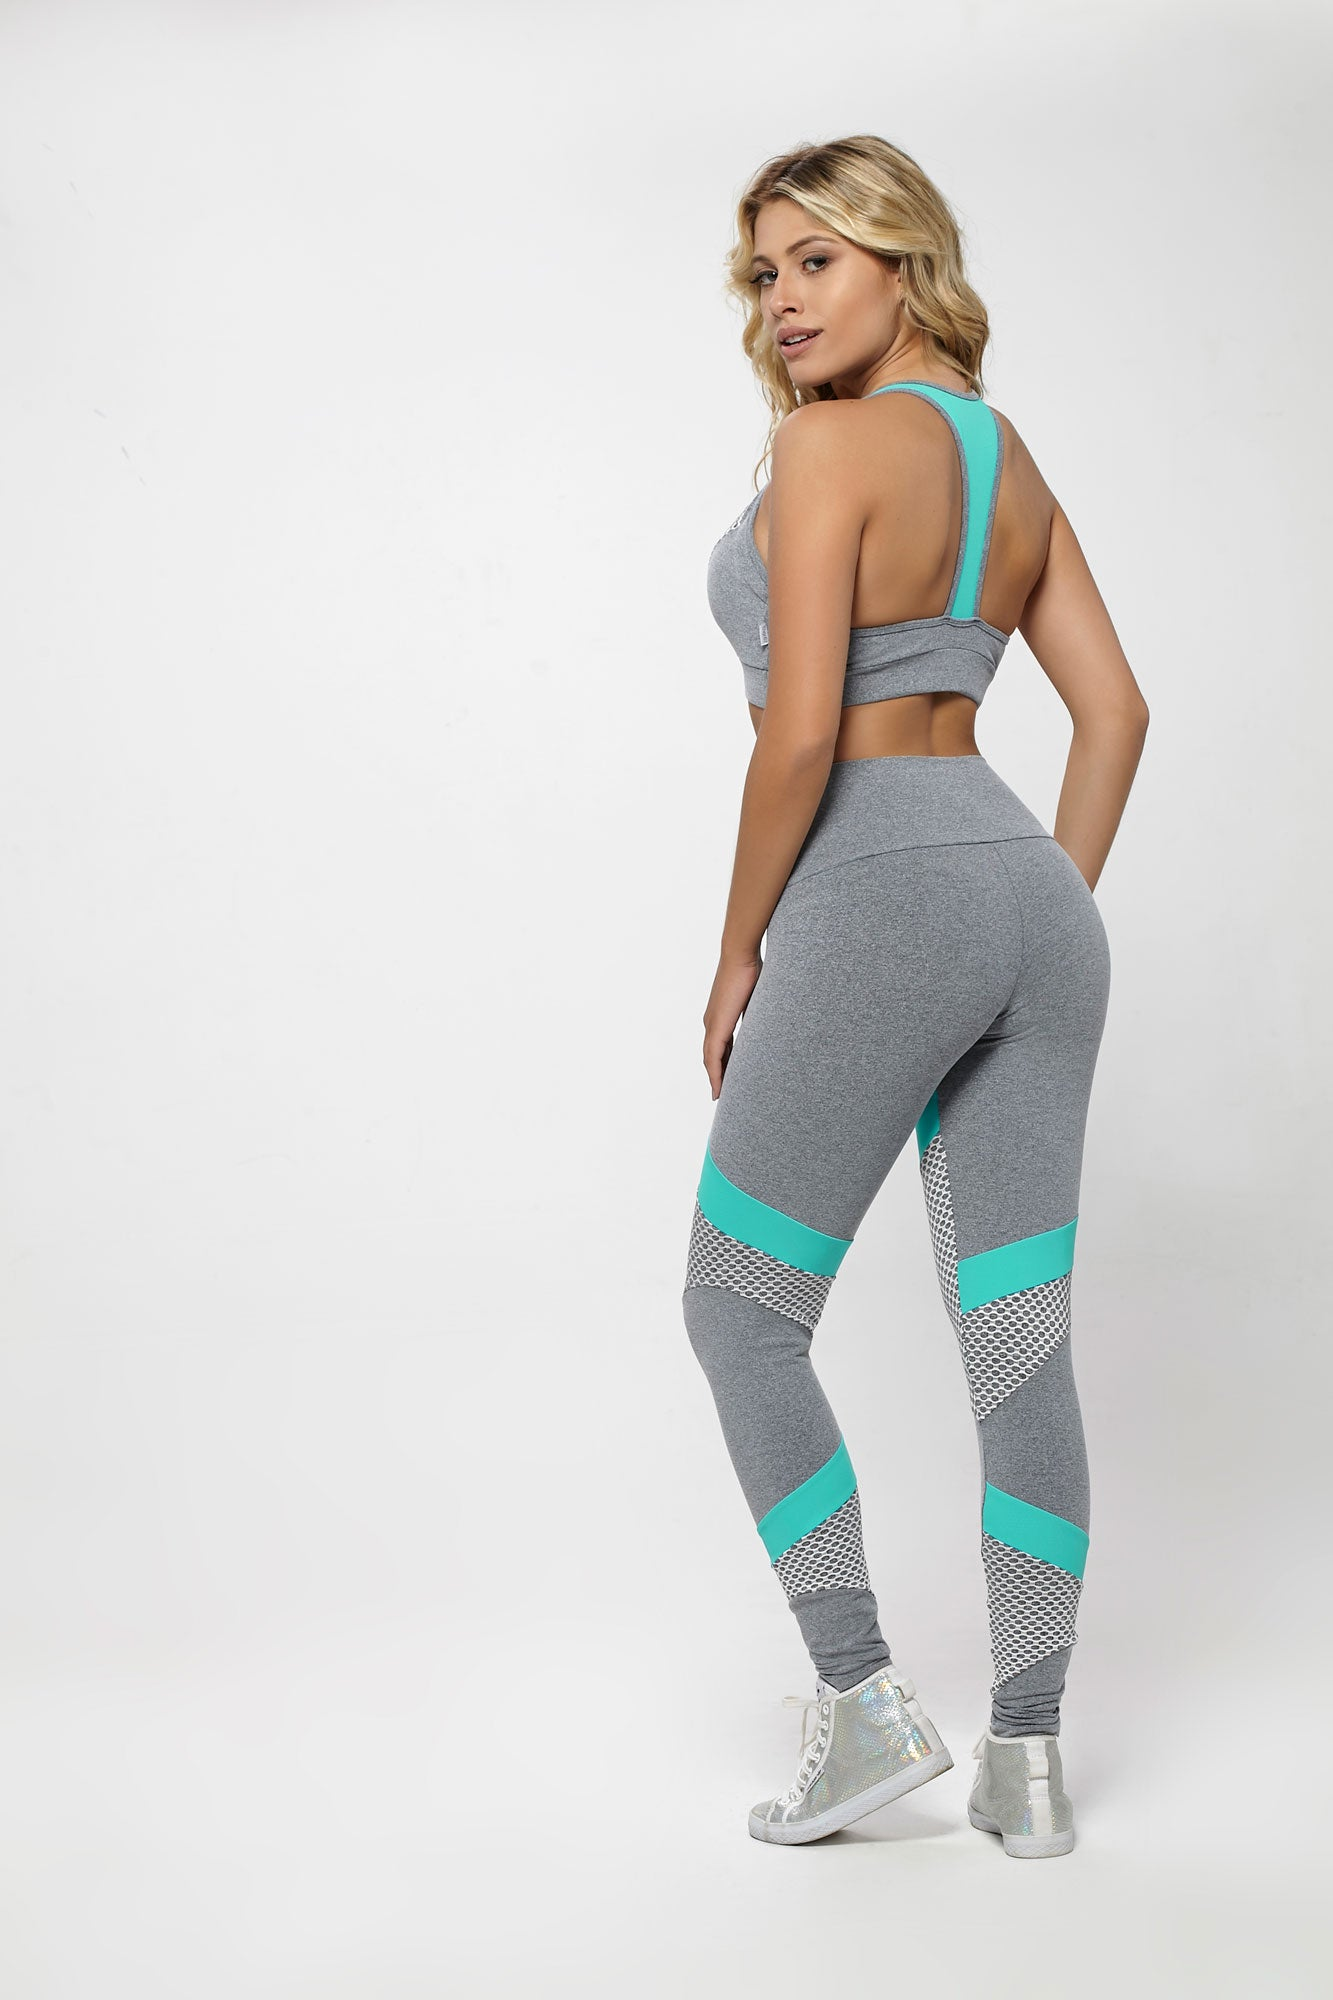 Legging Impulse - OXYFIT - FitZee